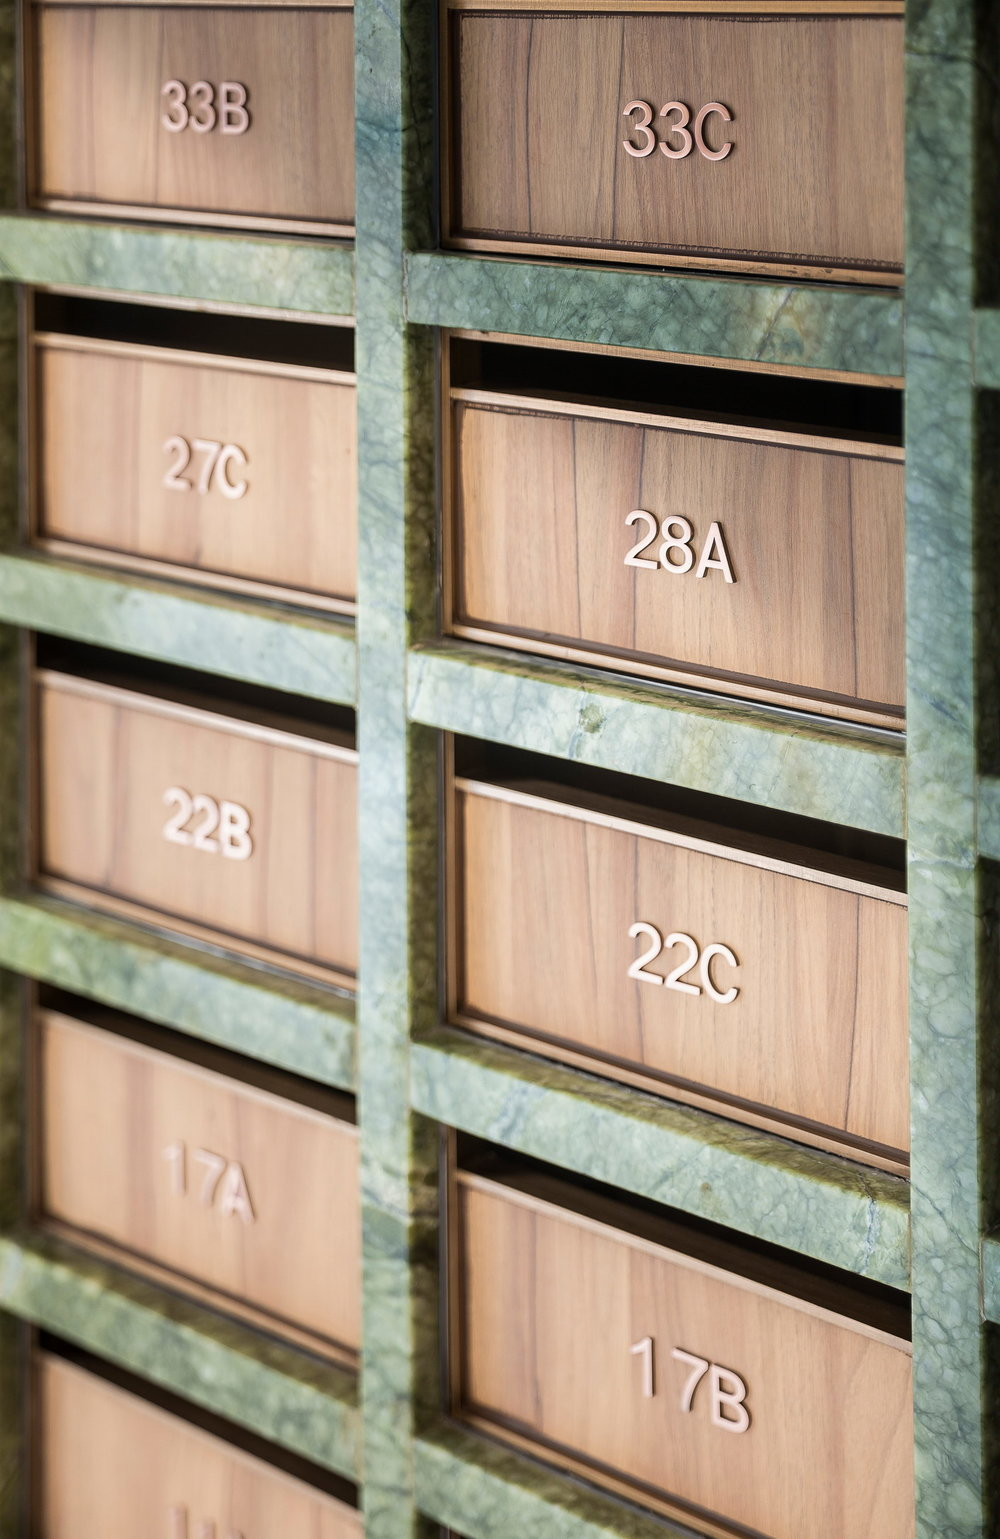 Detail of the mailboxes